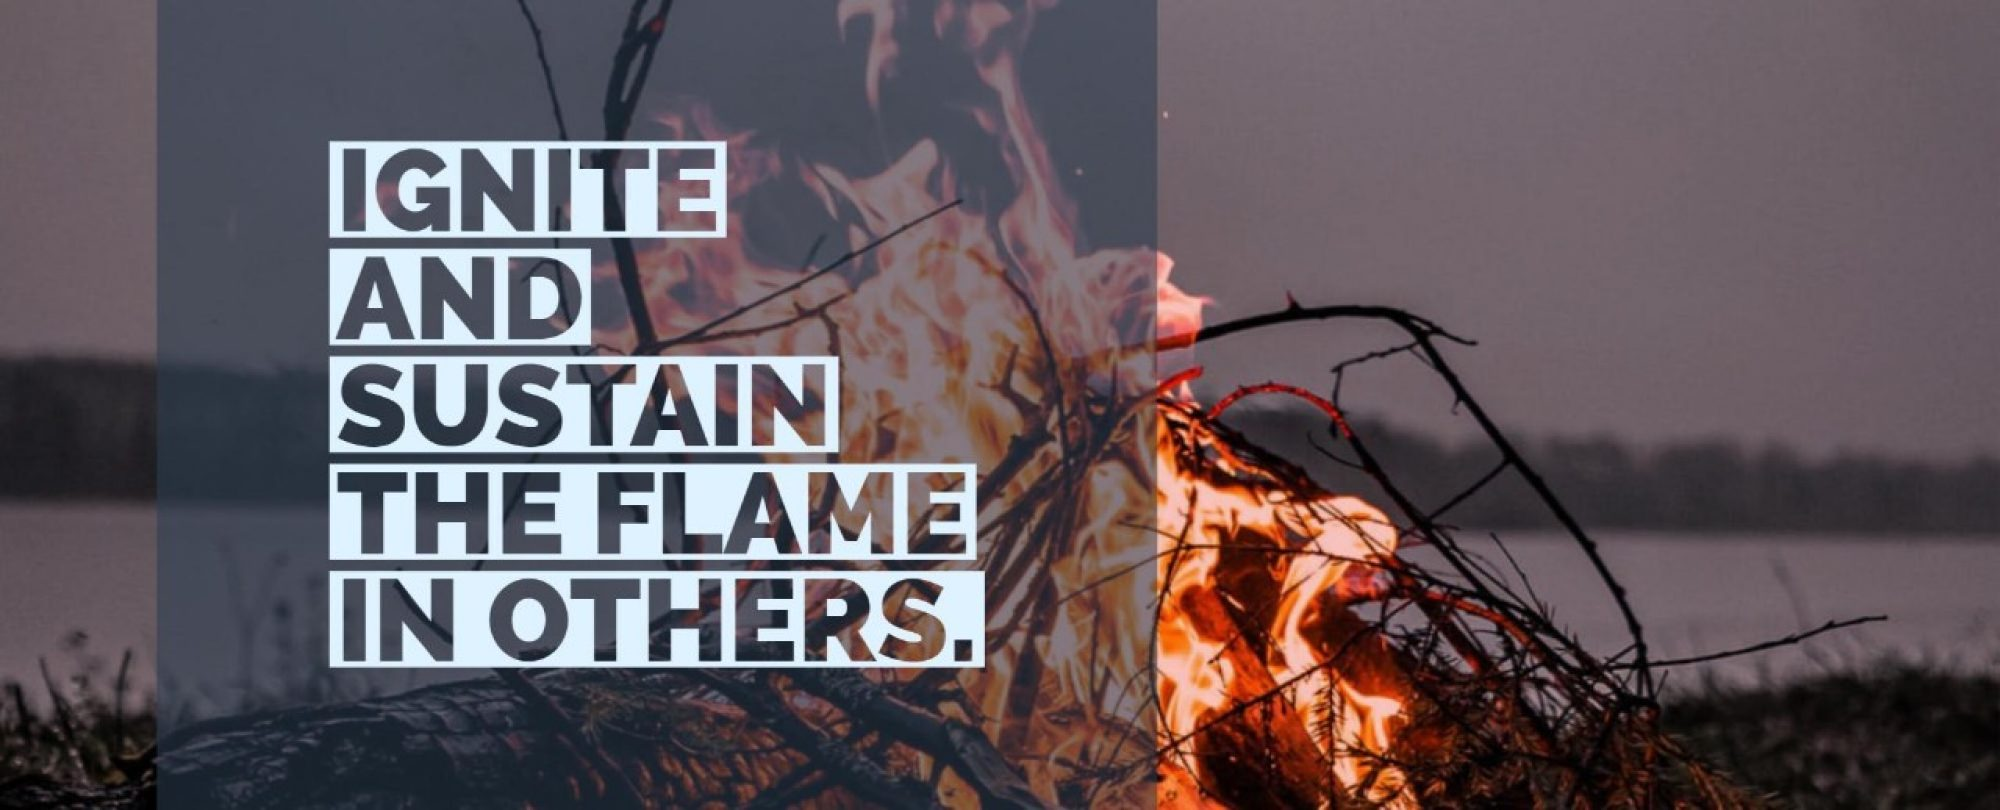 Ignite and sustain the flame in others.